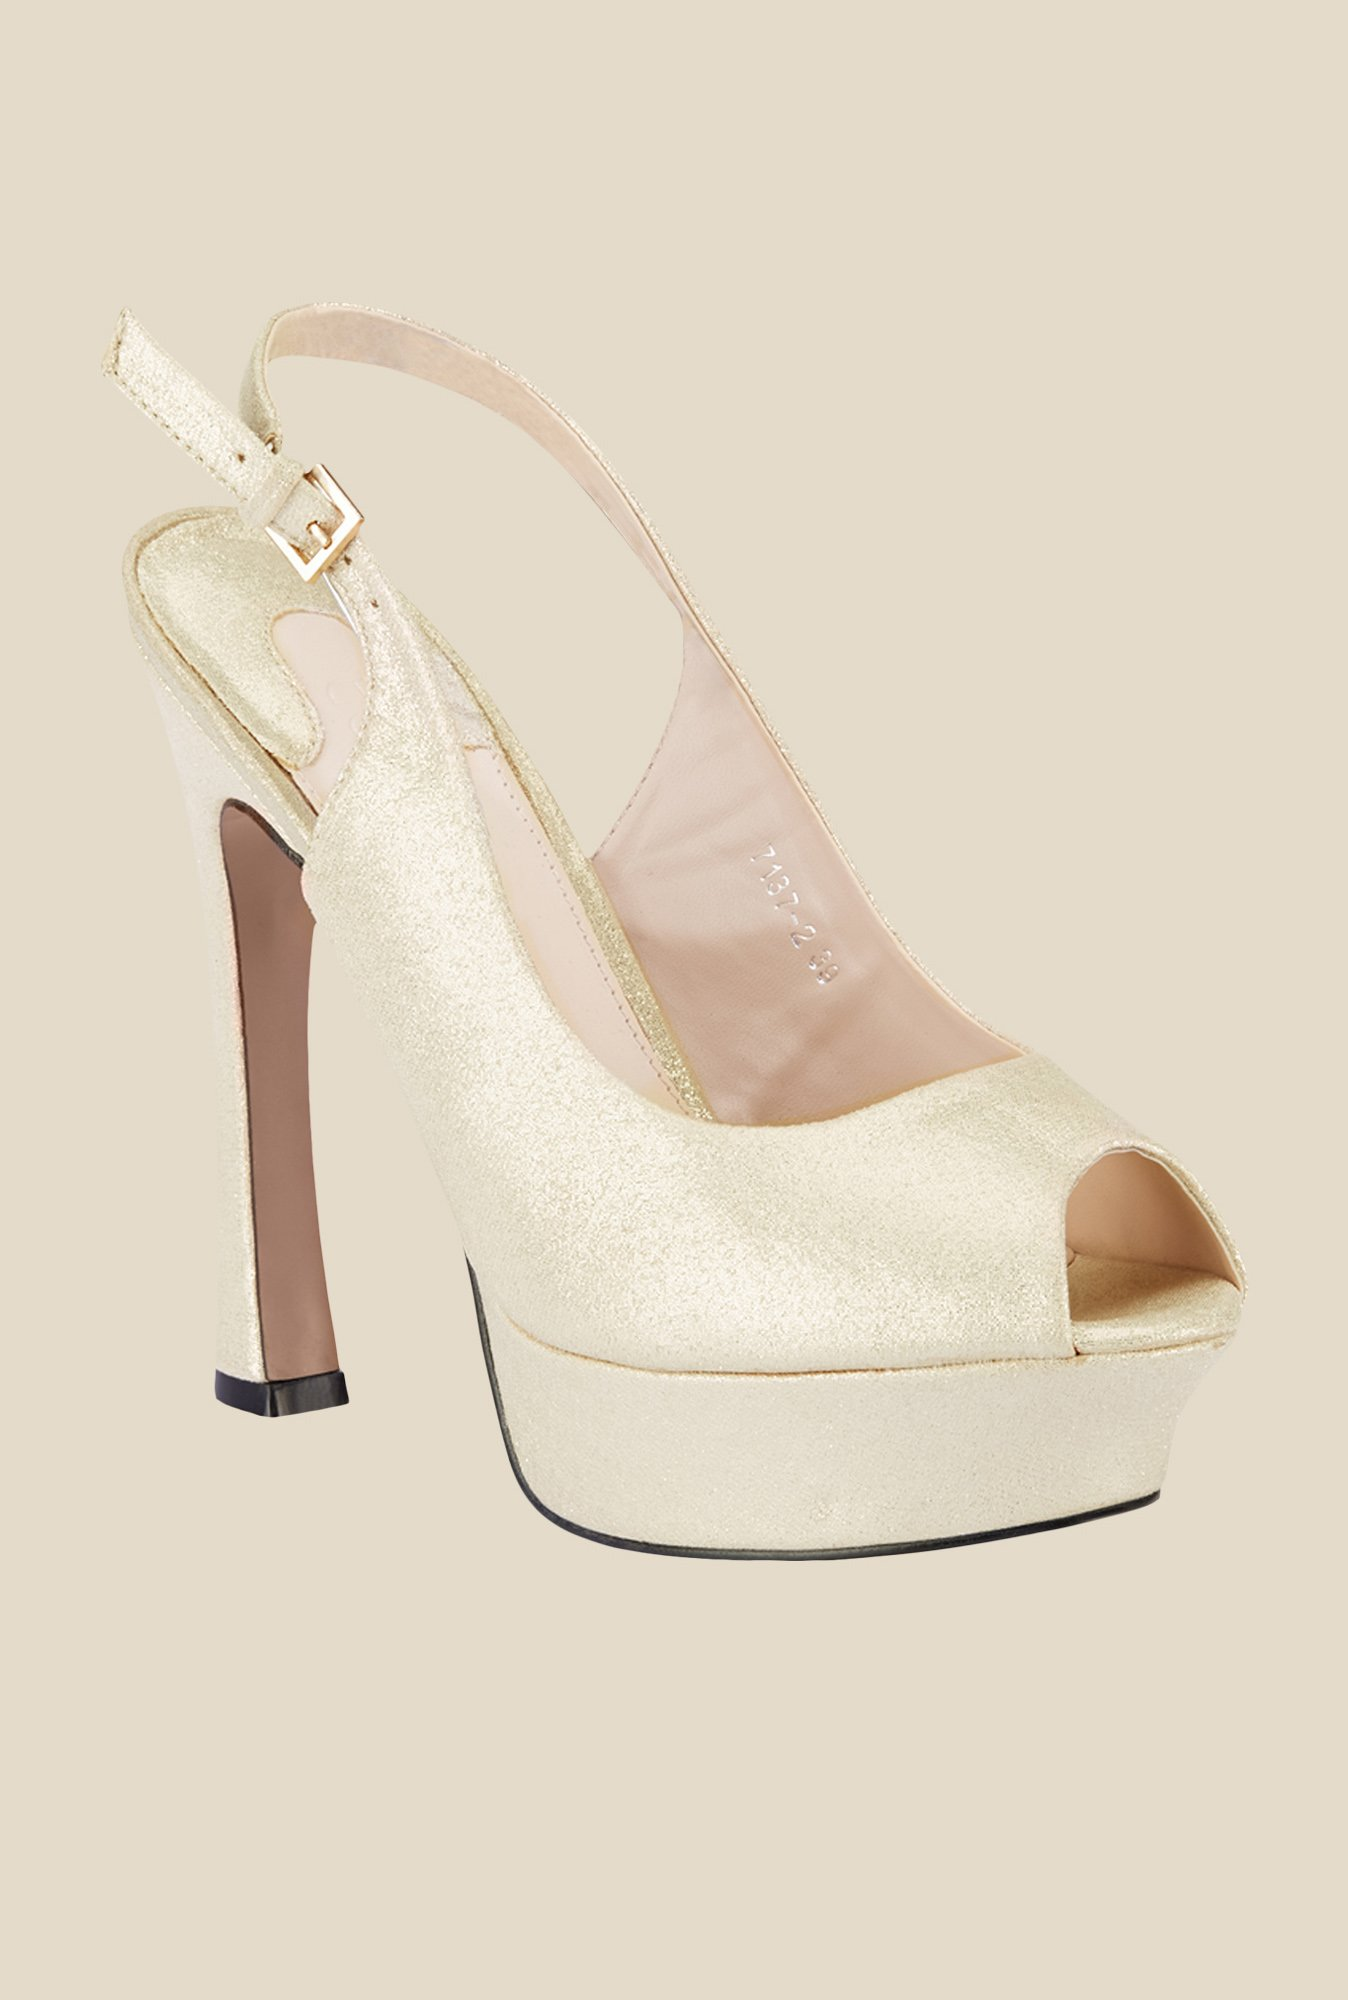 Tresmode Yedan Golden Back Strap Stilettos